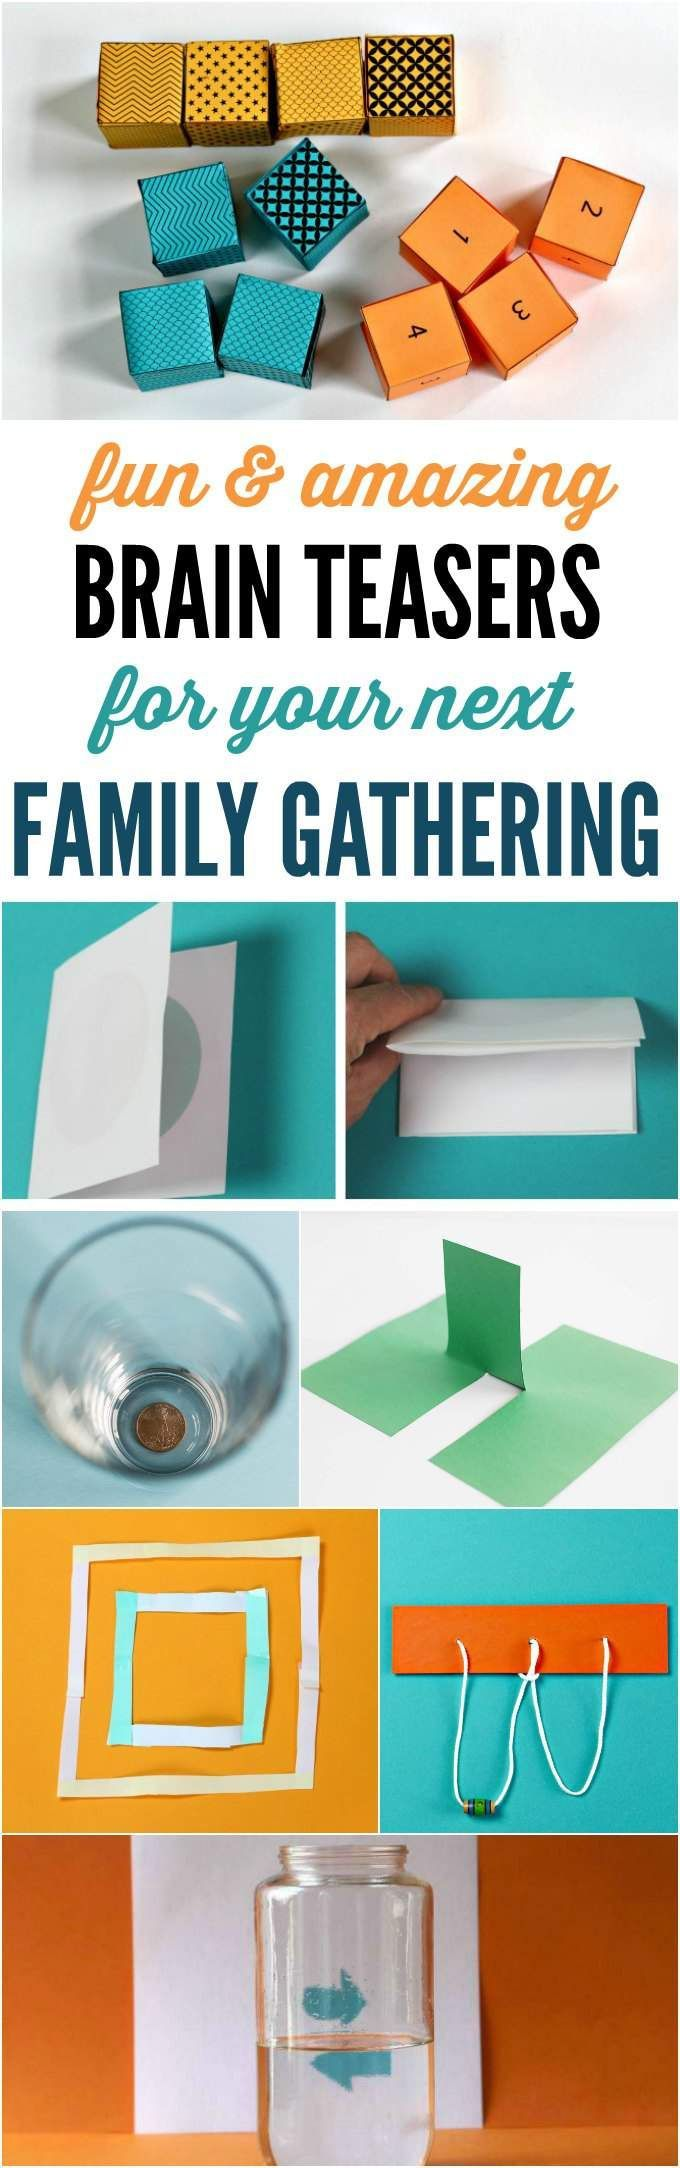 Fun and Amazing Brain Teasers for Family Gatherings